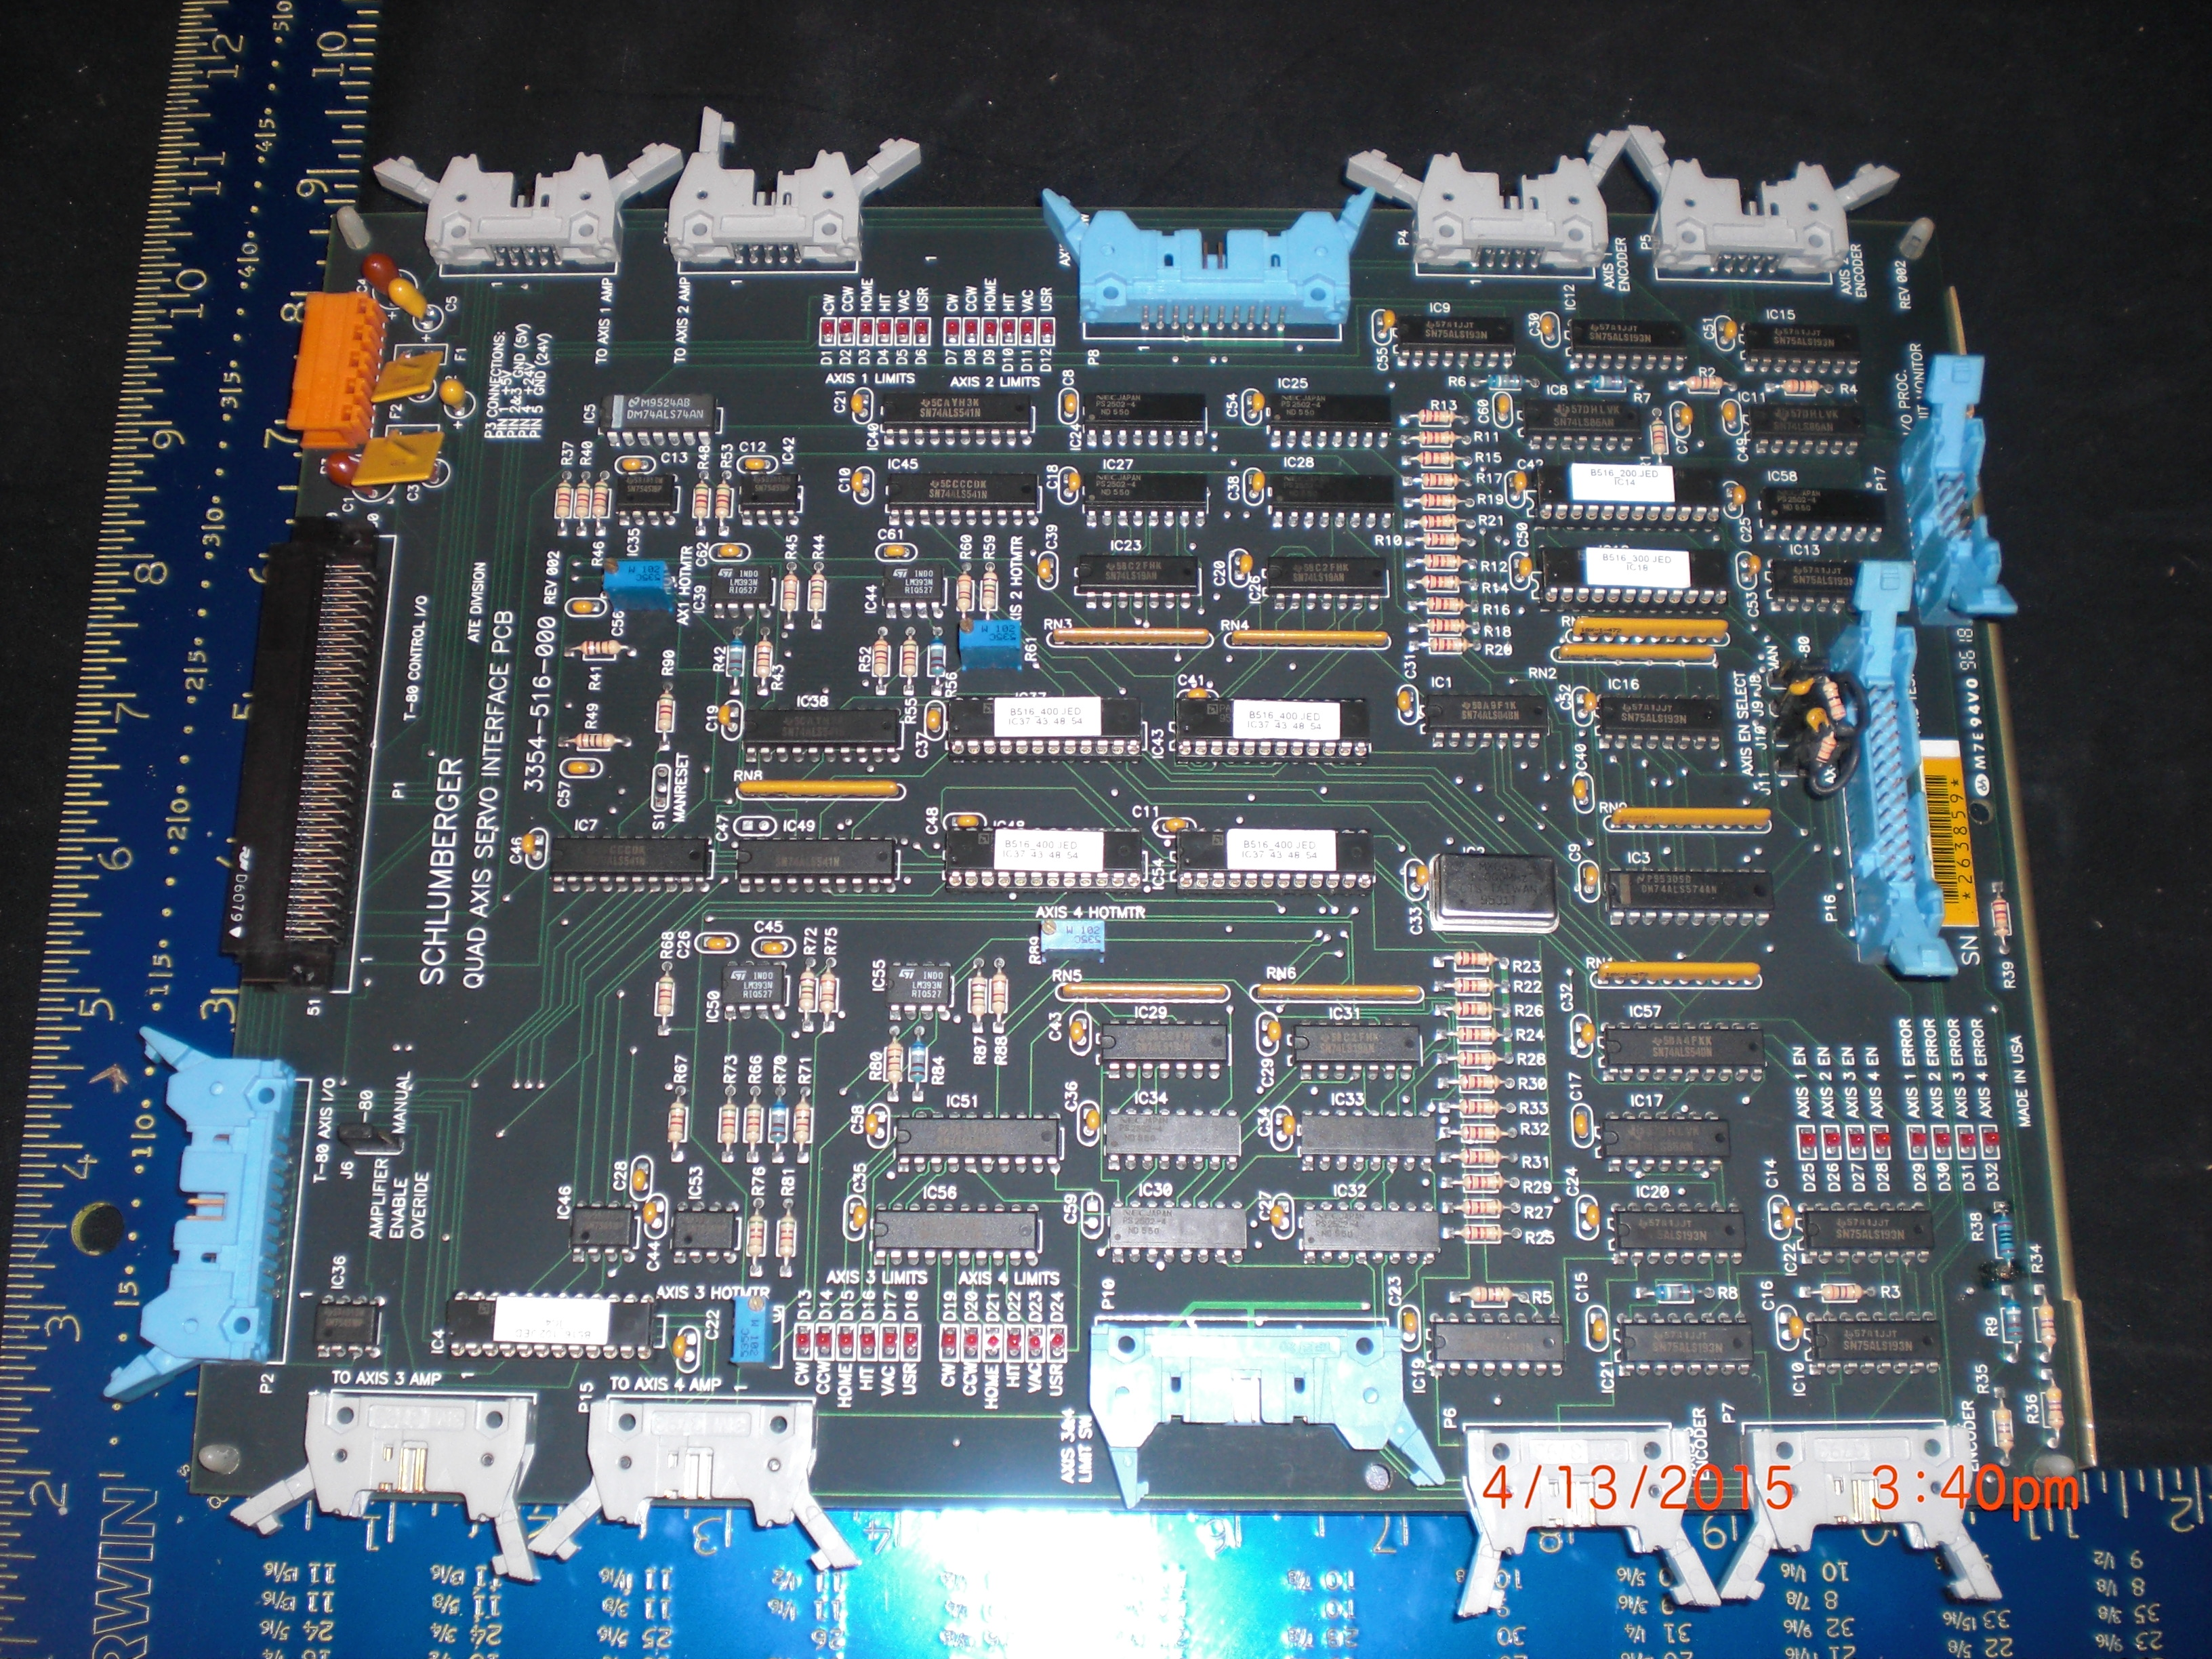 PCB Schlumberger Systems 3354-516-000 Quad AXIS SERVO INTERFACE CARD